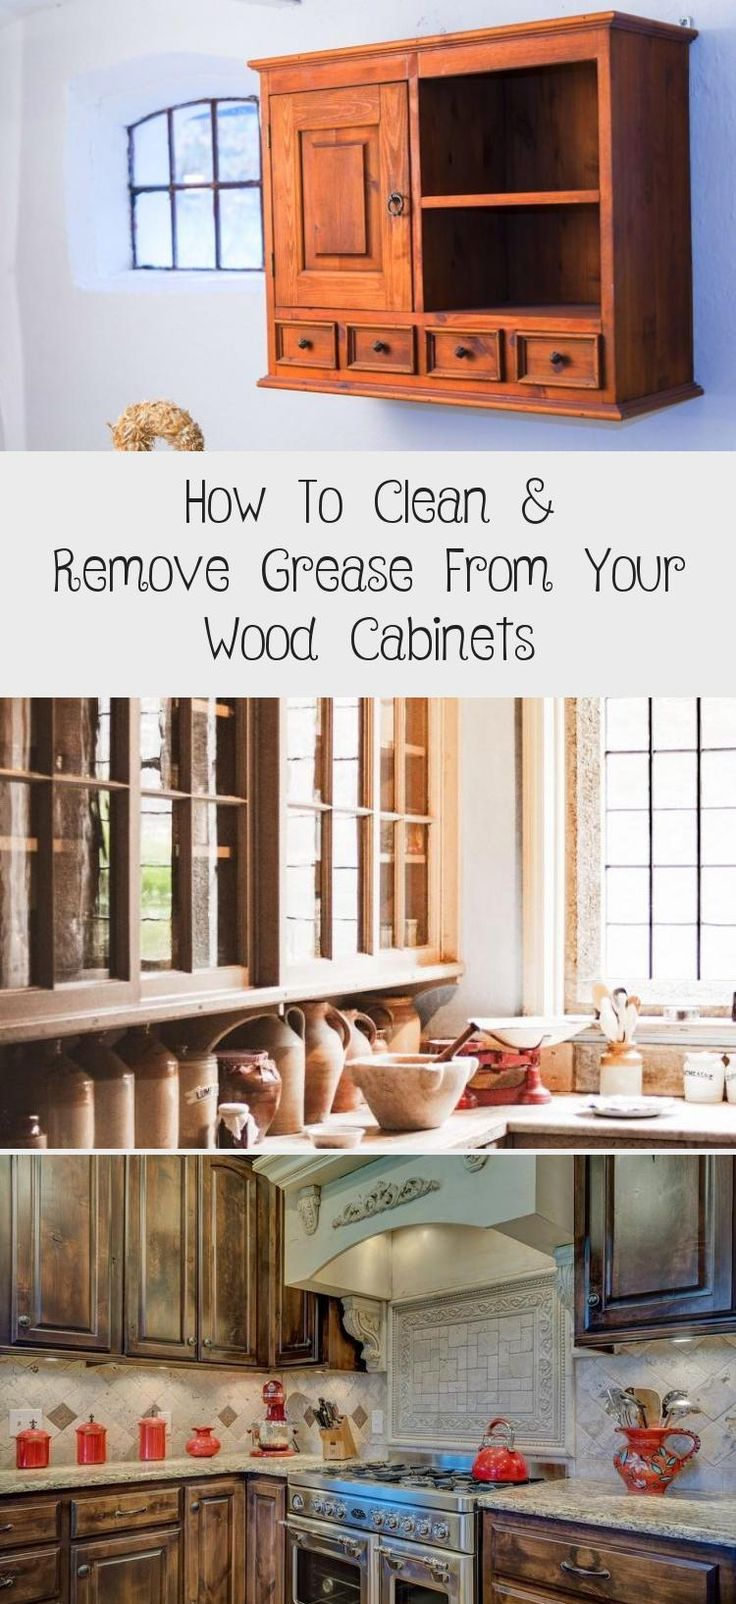 How To Clean & Remove Grease From Your Wood